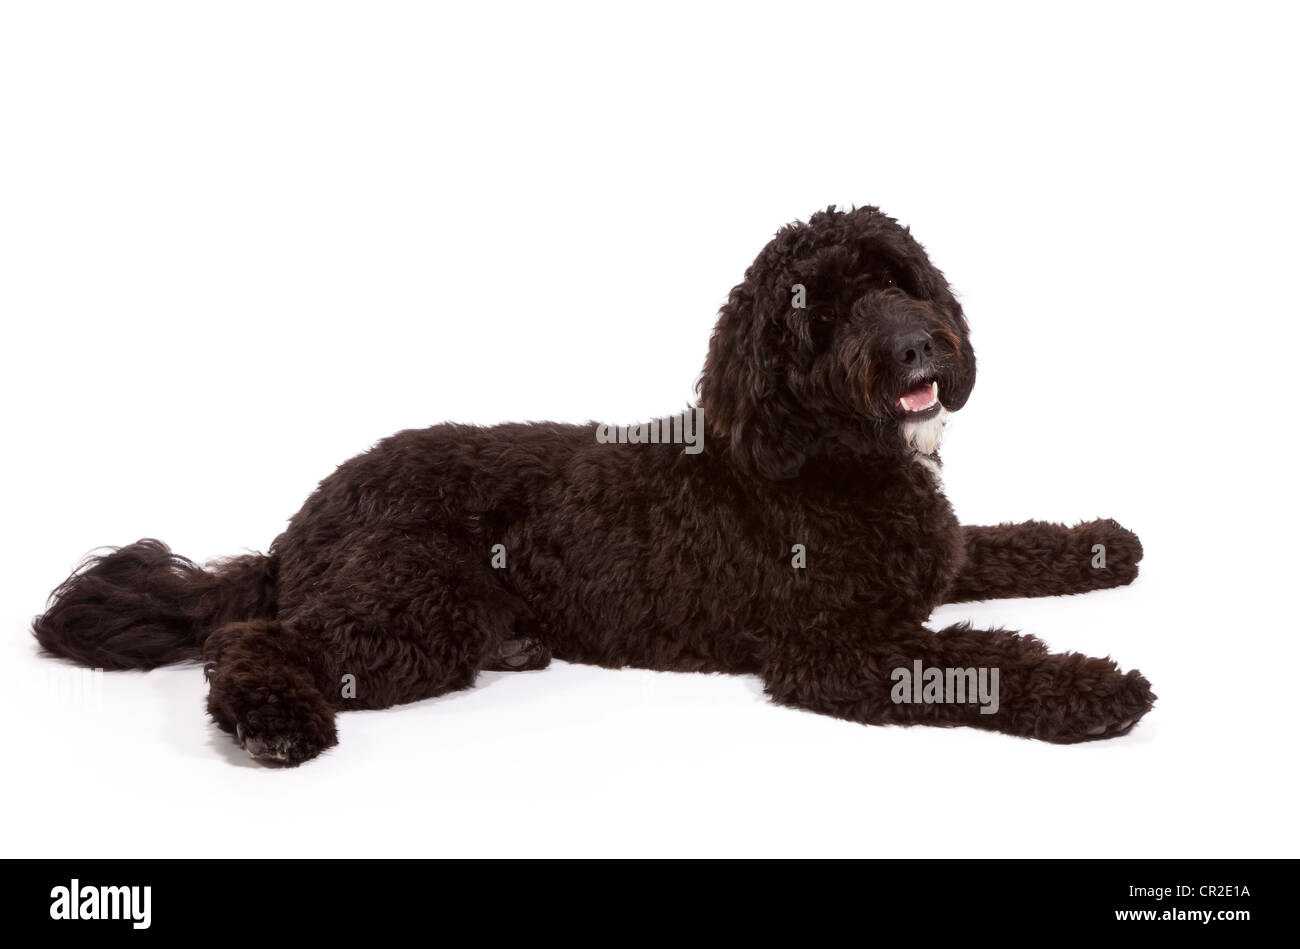 Cockerpoo (Cocker Spaniel Poodle Cross) male dog at 1 year old - Stock Image